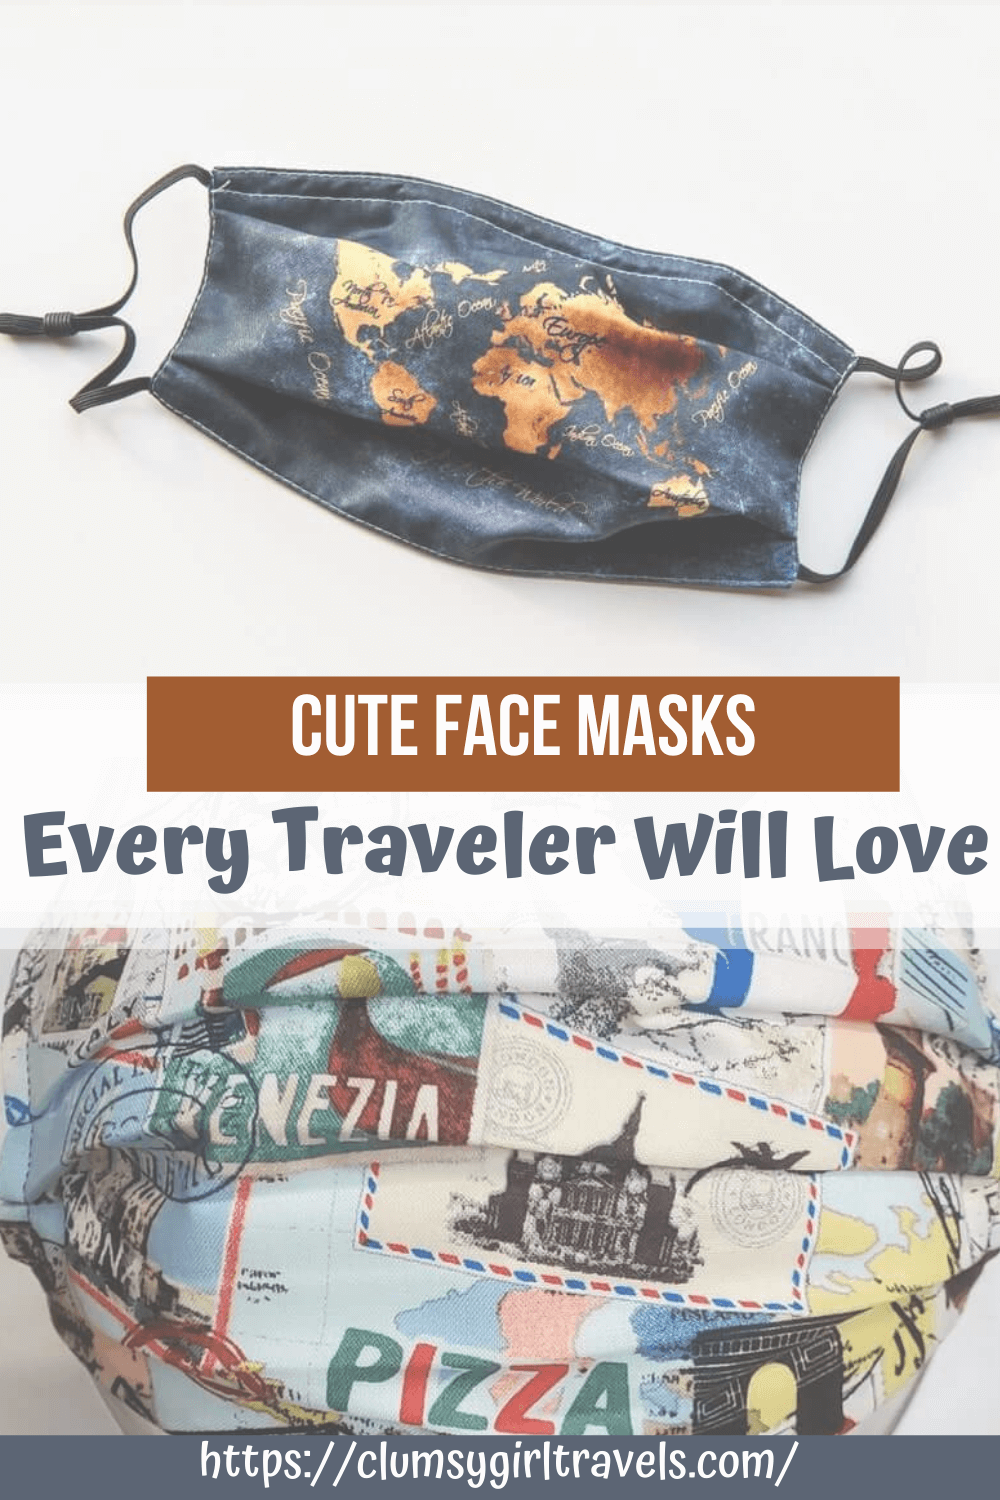 Finding cute face masks is a must in todays day and age. This guide will help those wanderlusting souls find the perfect face mask.